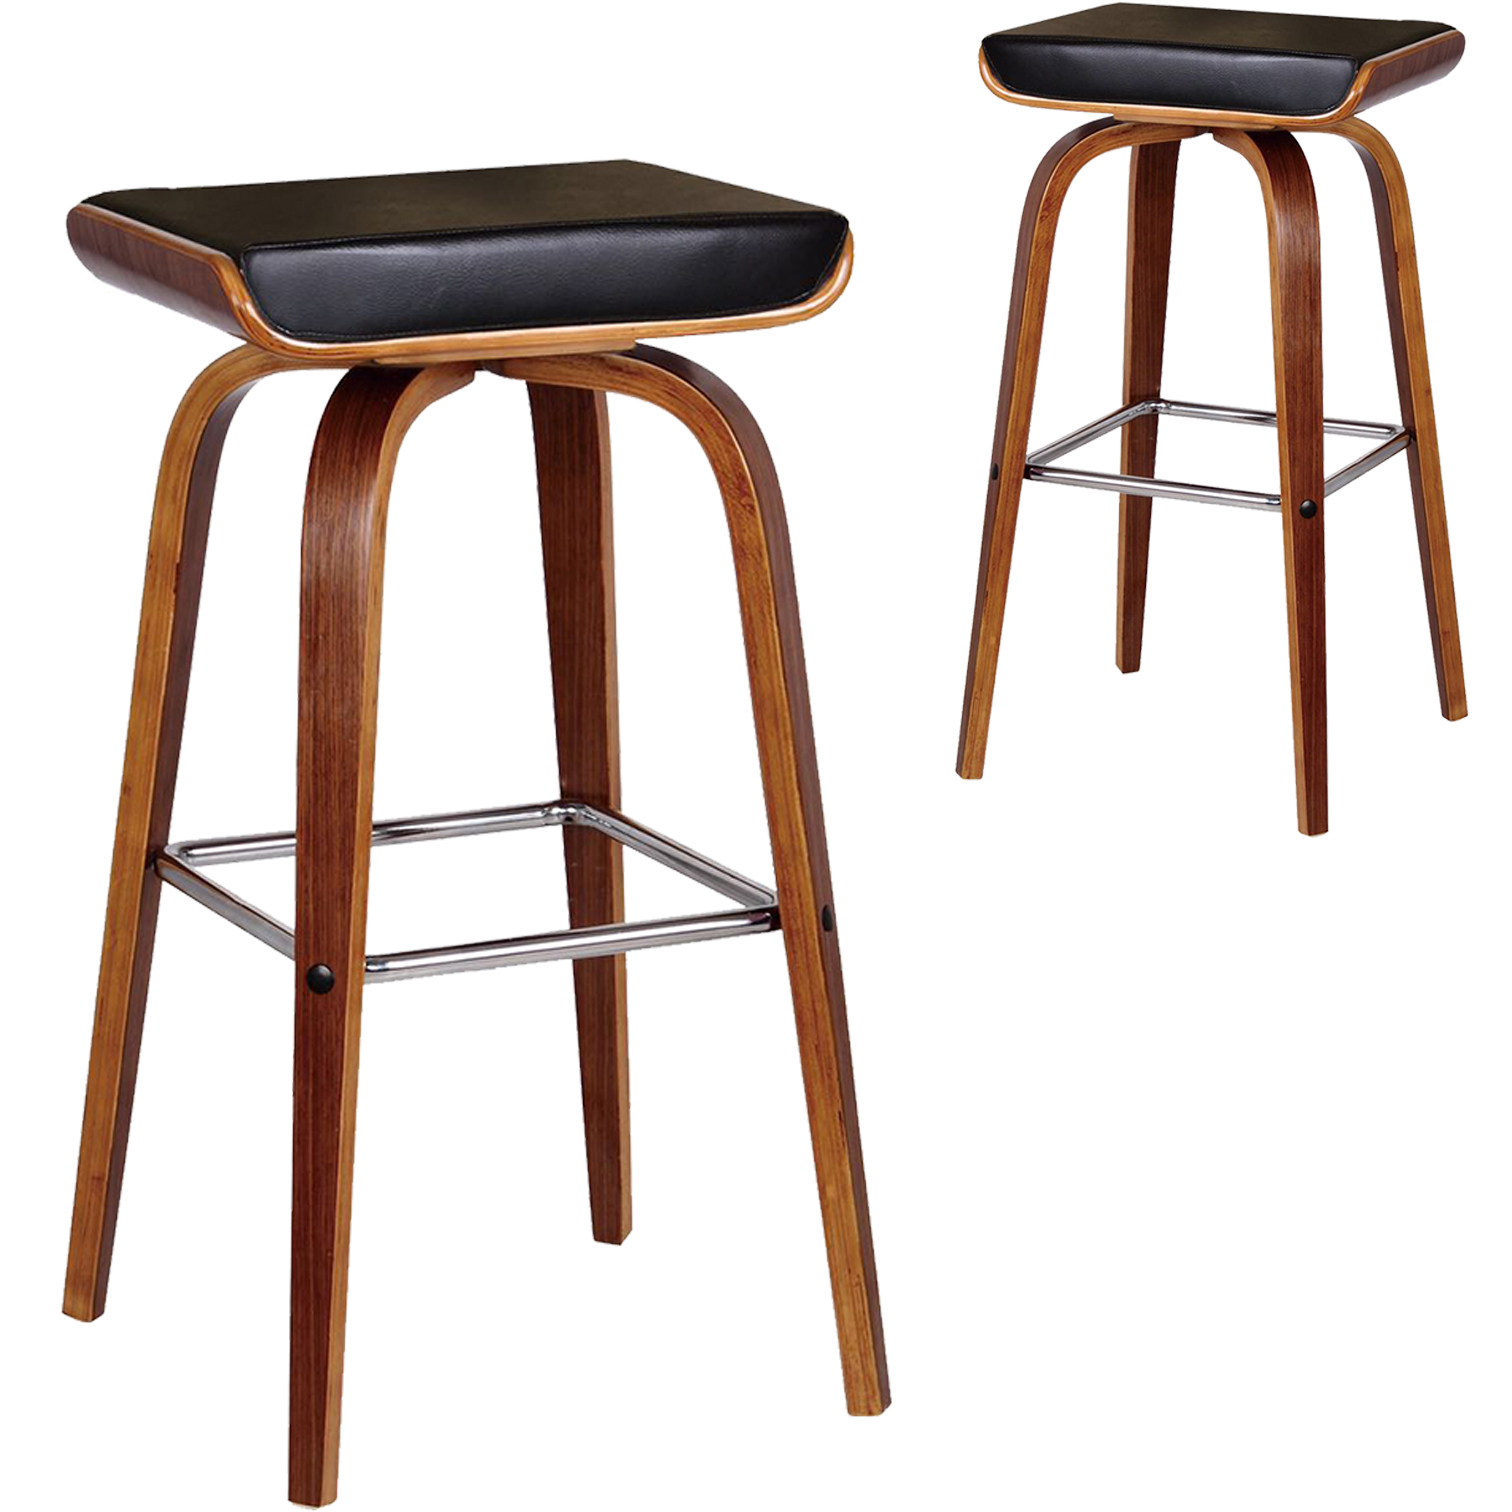 counter mainfarmhouse images design outstanding stoolscountry swivel stoolsdiy stools farmhouse bar stool